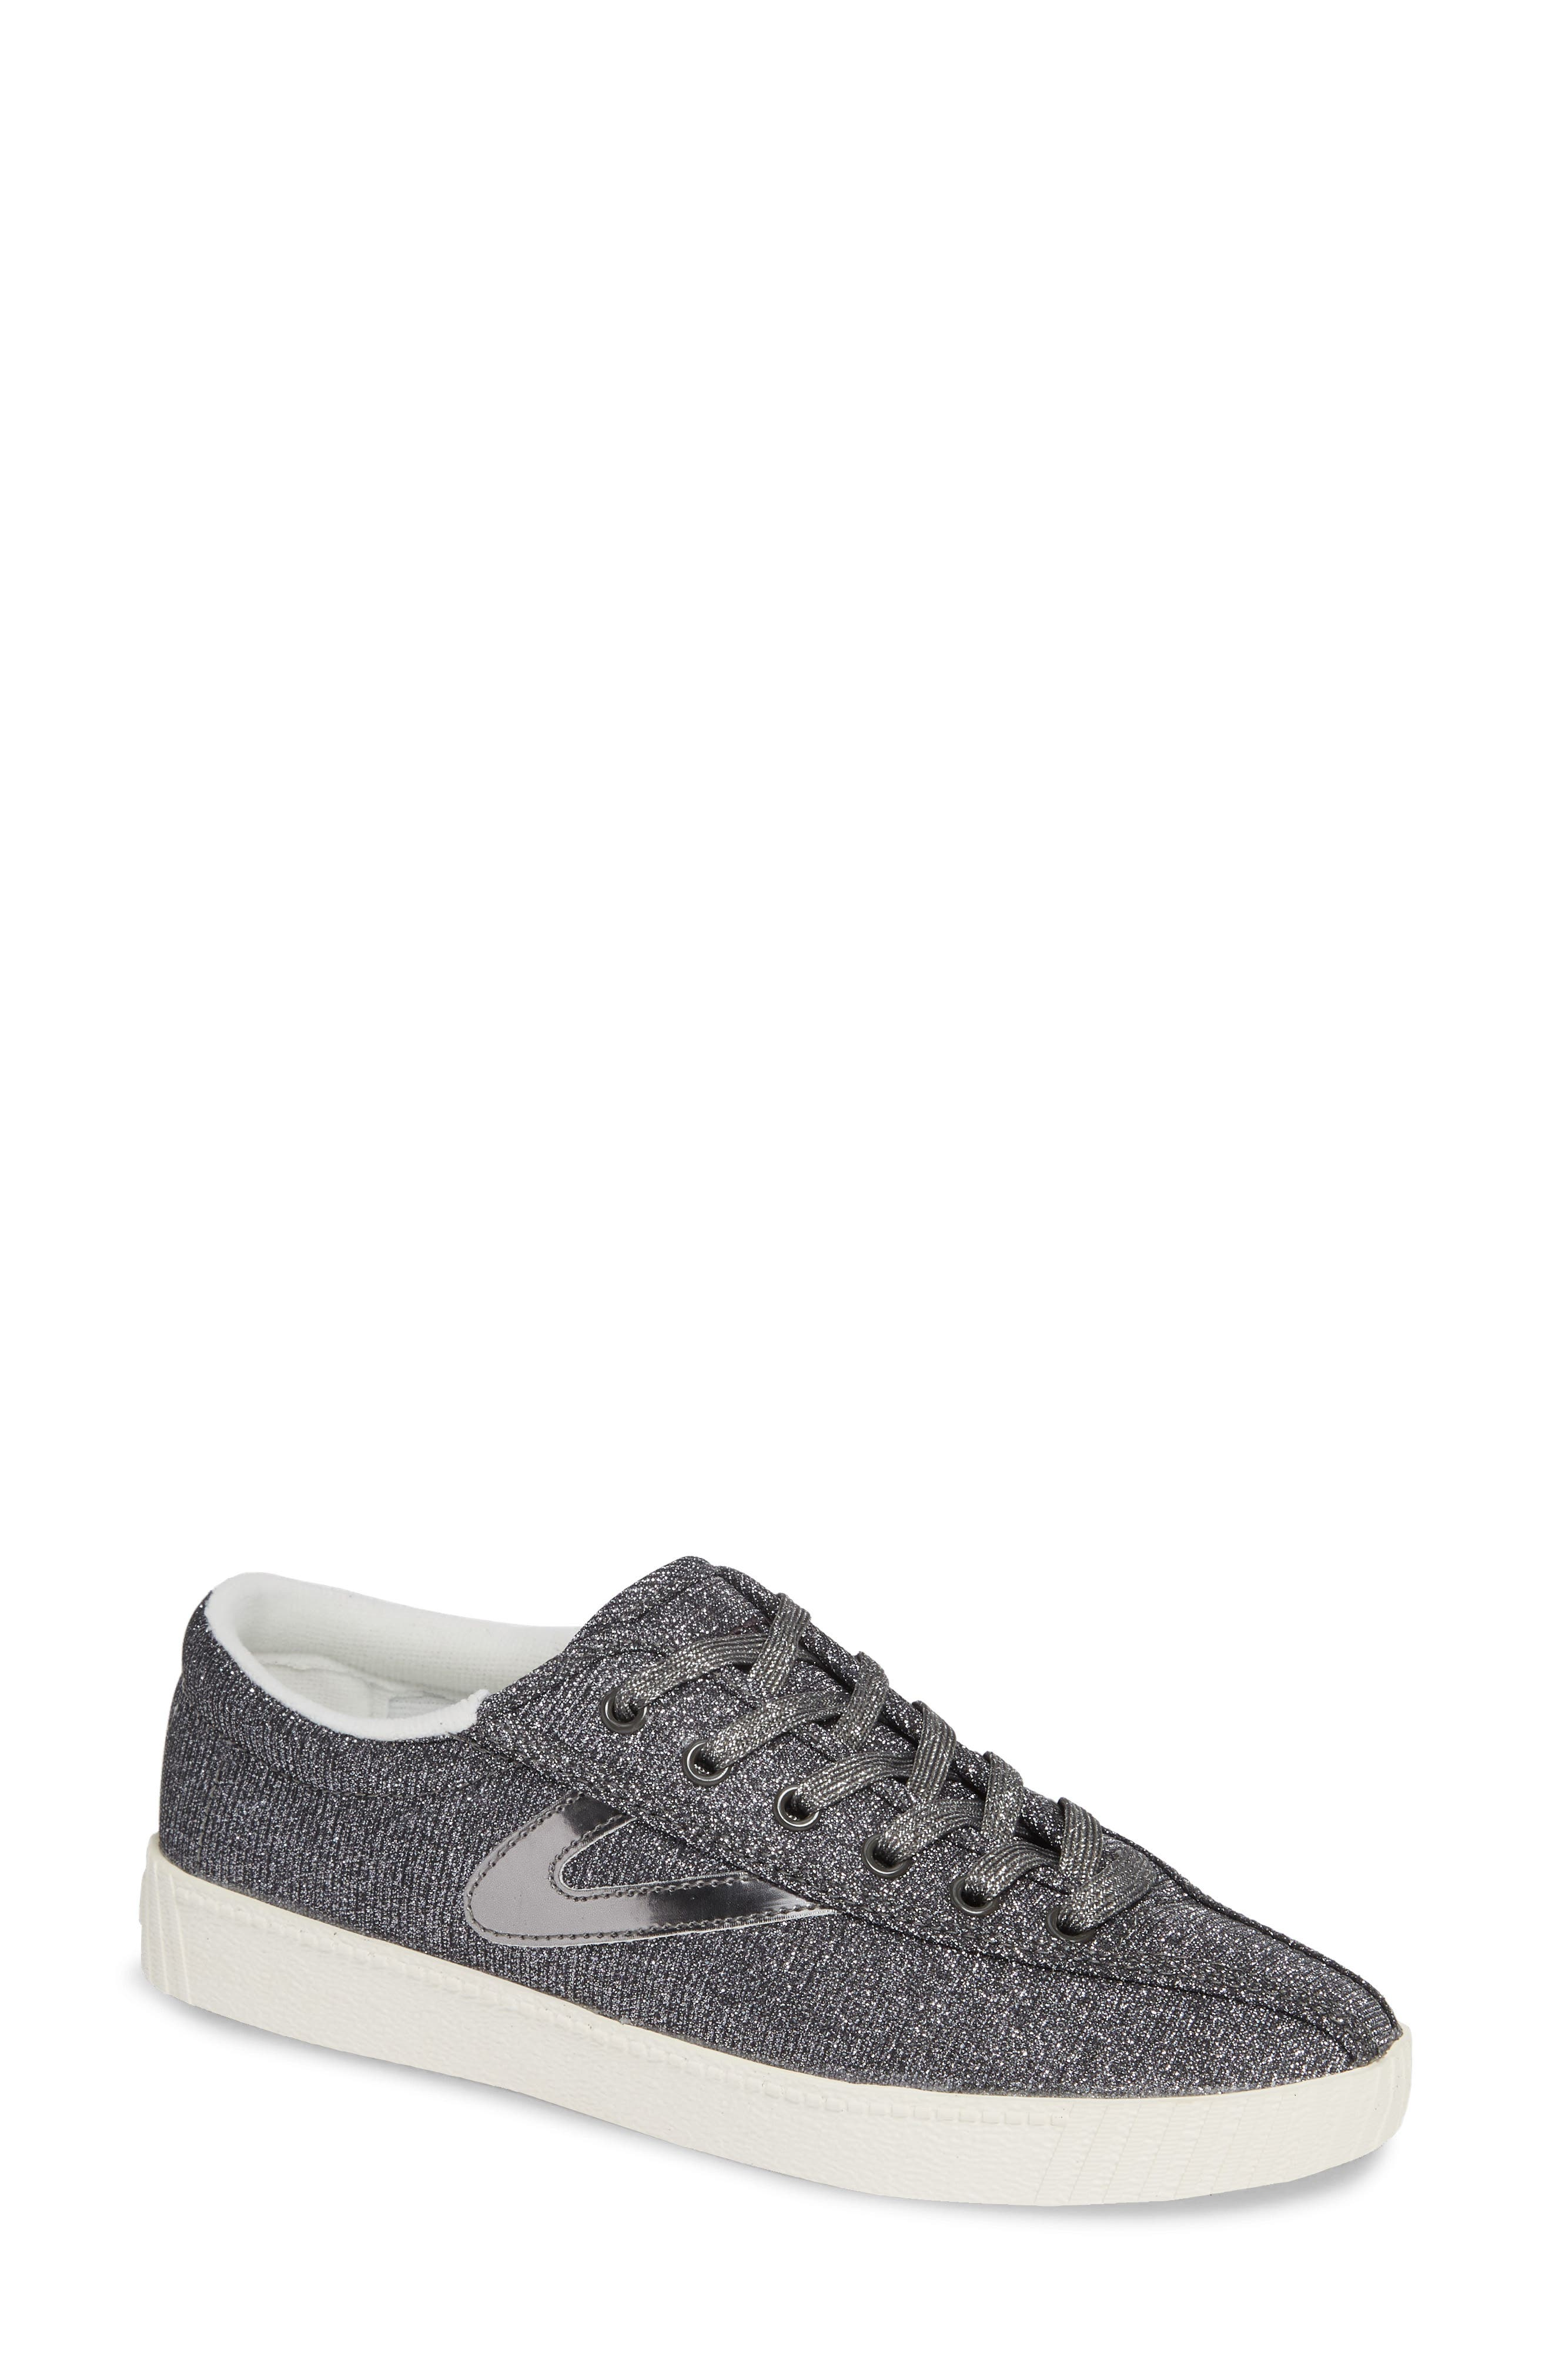 'Nylite' Sneaker,                         Main,                         color, Pewter/ Pewter